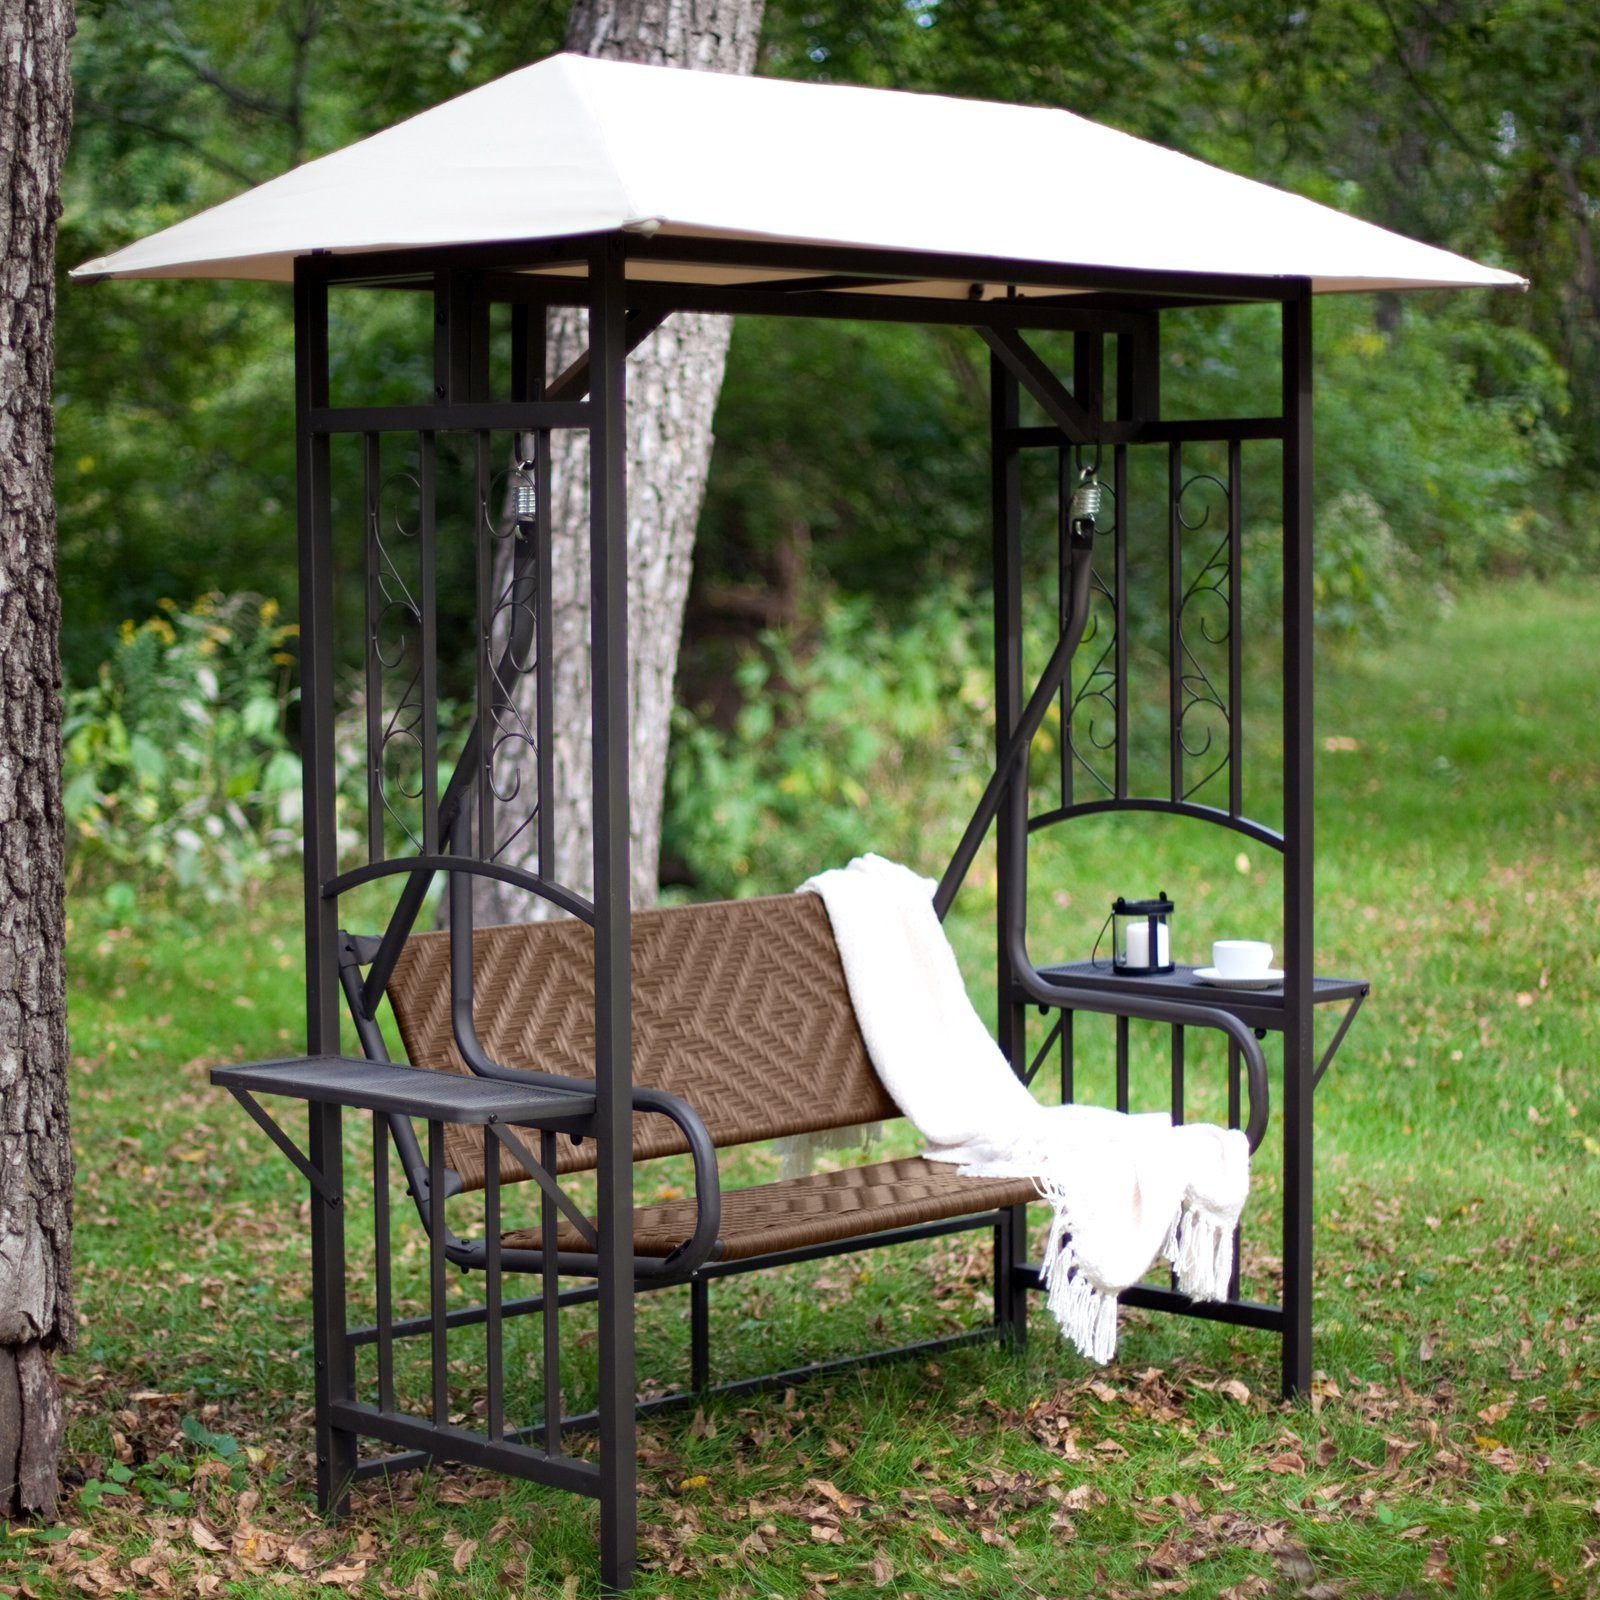 Coral Coast Bellora 2 Person Gazebo Swing Natural Resin Wicker by Resin Furniture